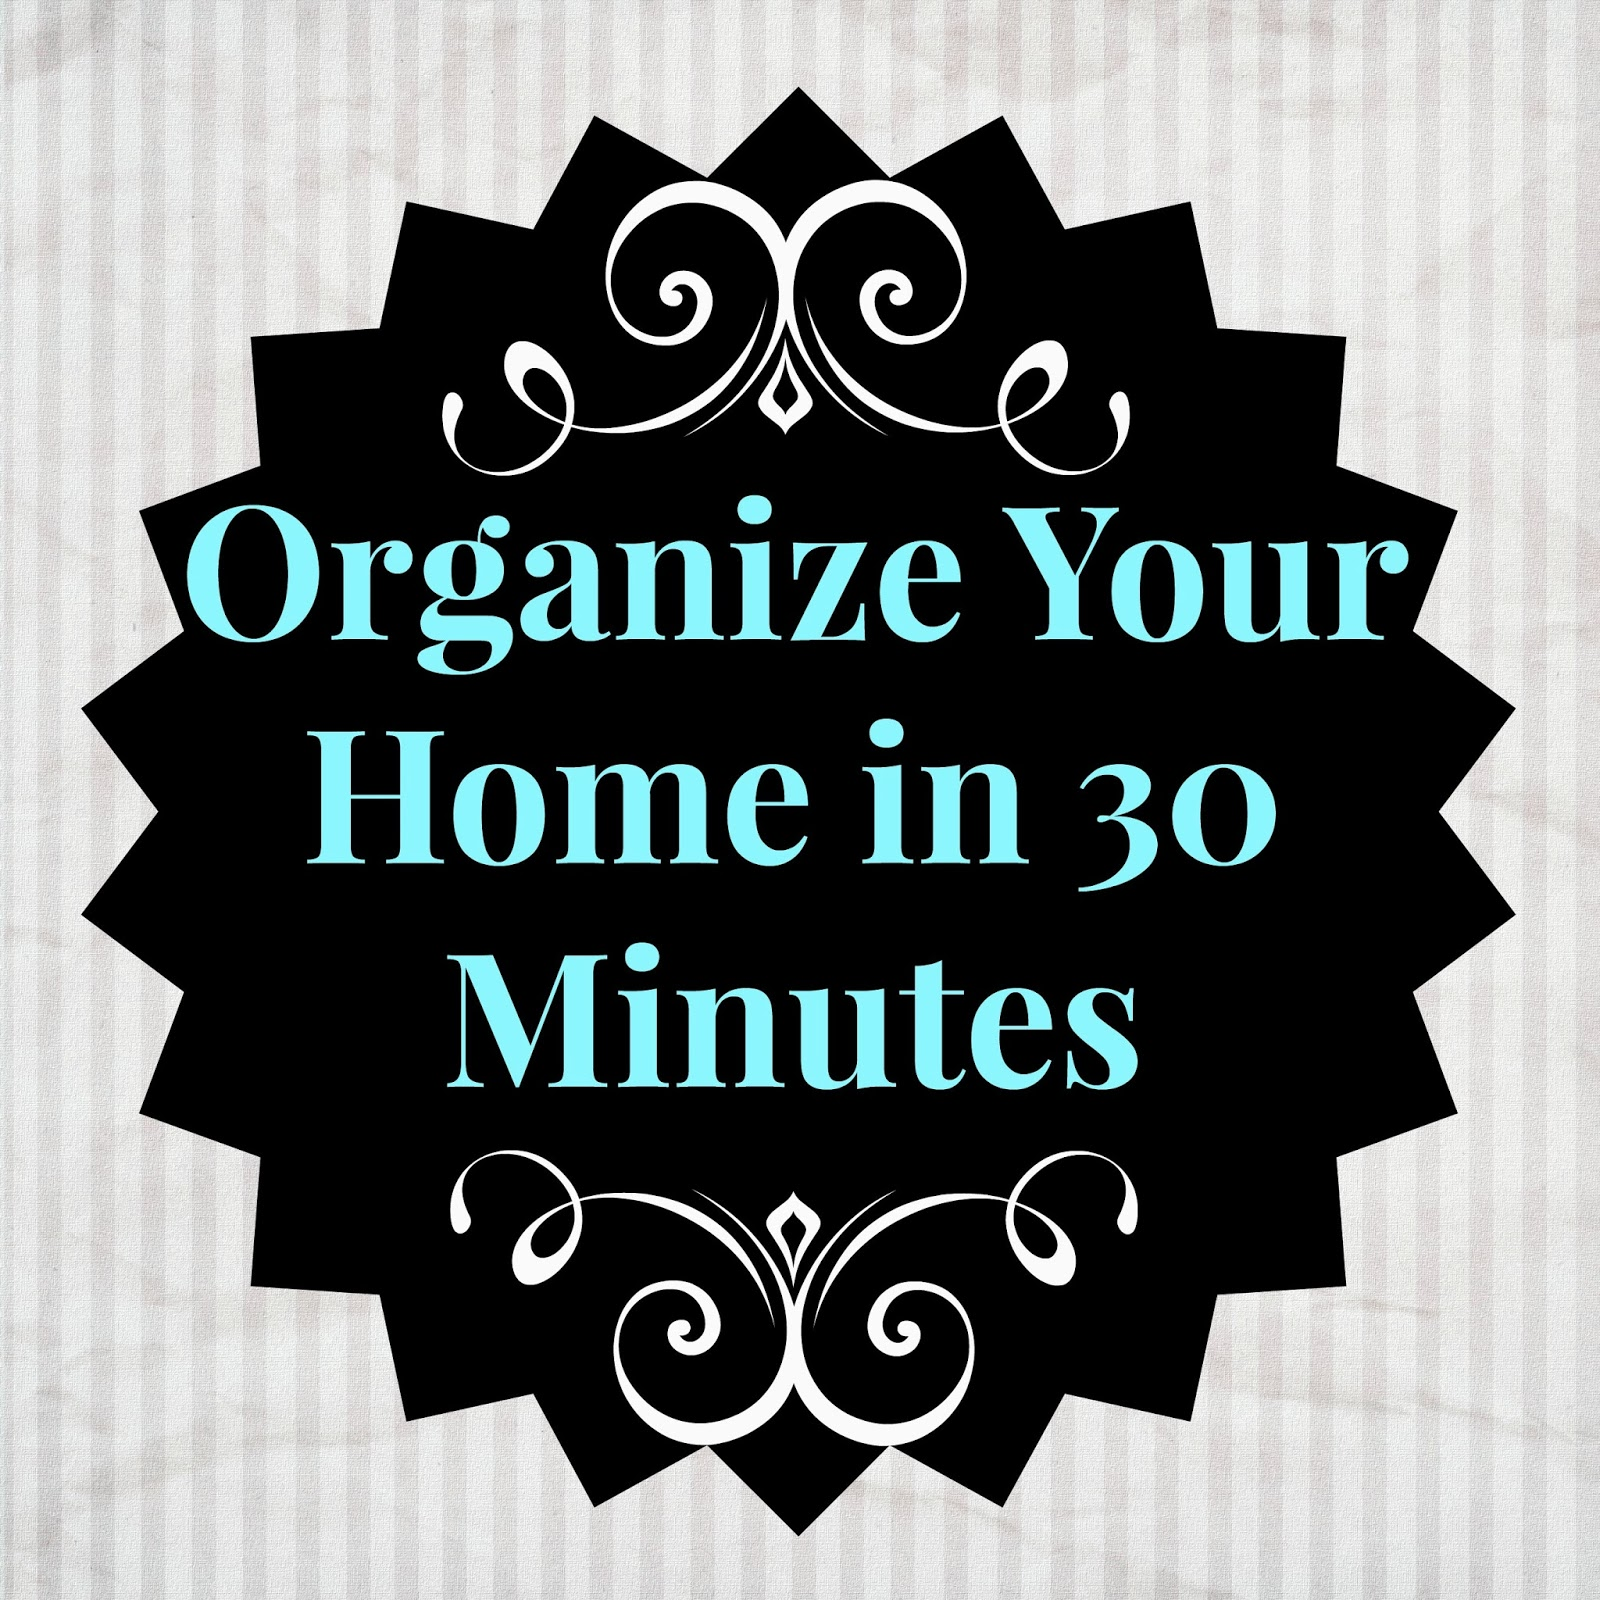 How to clean your house in 30 minutes